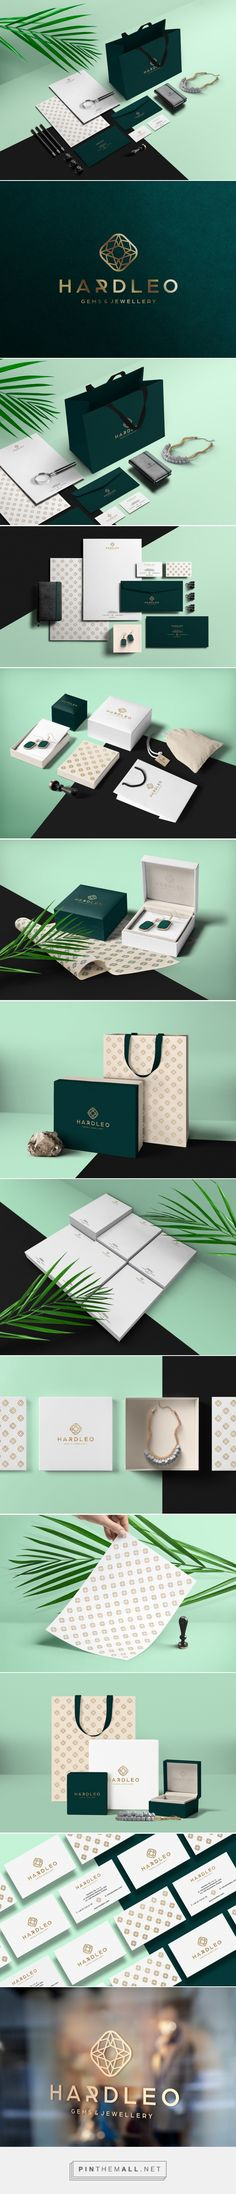 Hardleo Gems & Jewellery Branding by Dawid Cmok | Fivestar Branding Agency – Design and Branding Agency & Curated Inspiration Gallery